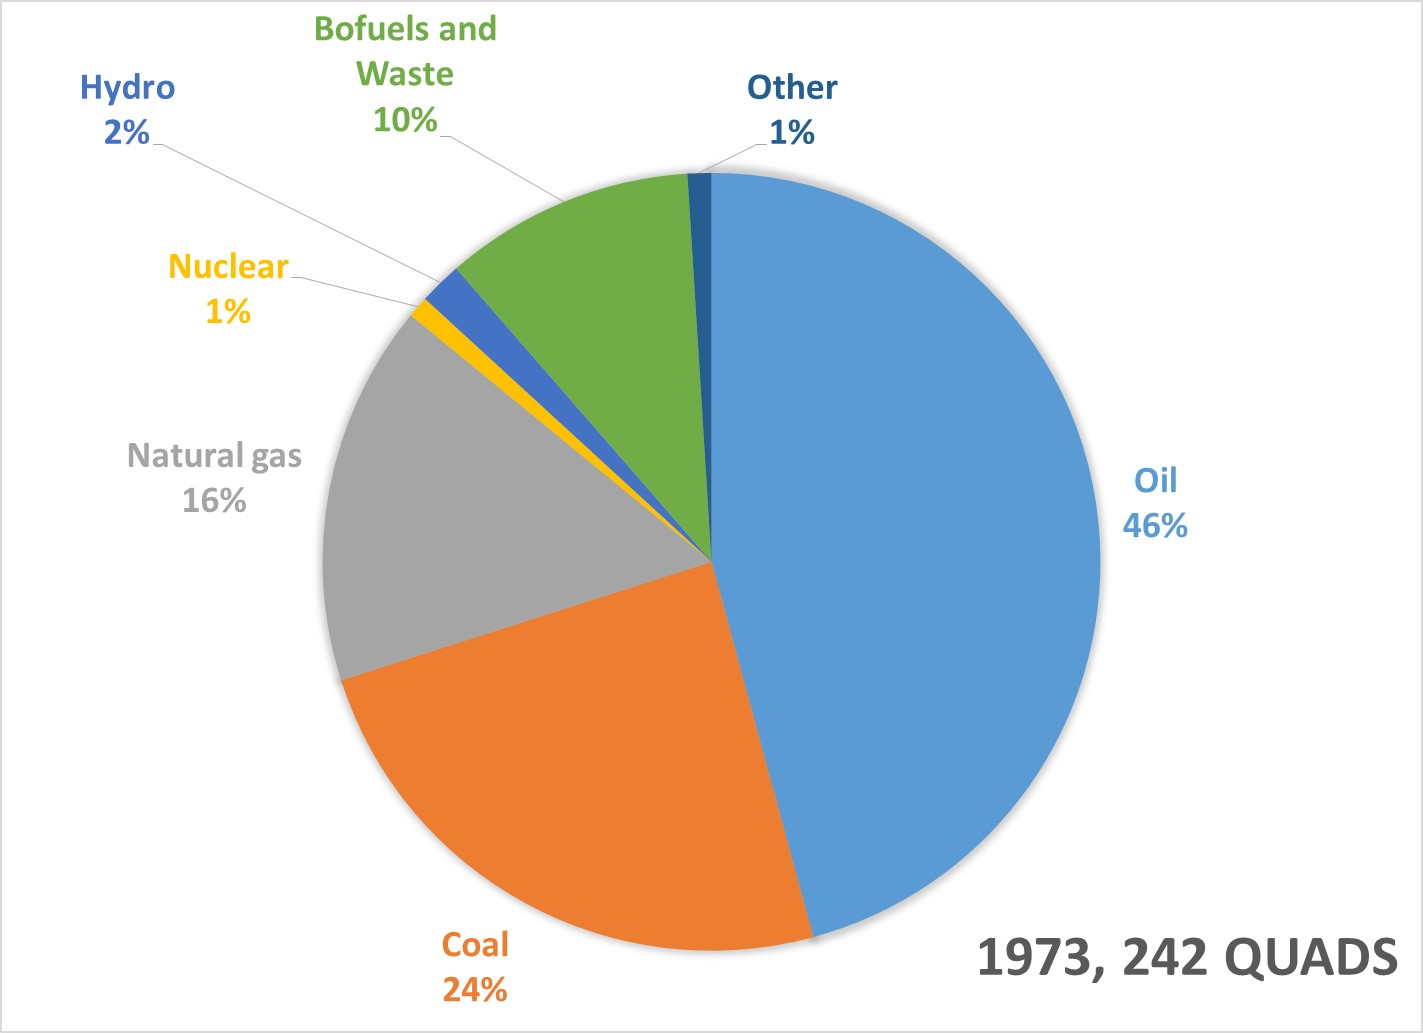 World Energy Consumption in 1973 by fuel type: Oil 46%, Coal 24%, Natural gas 16%, Nuclear 1%, Hydro 2%, Biofuels & Waste 10%, Other 1%